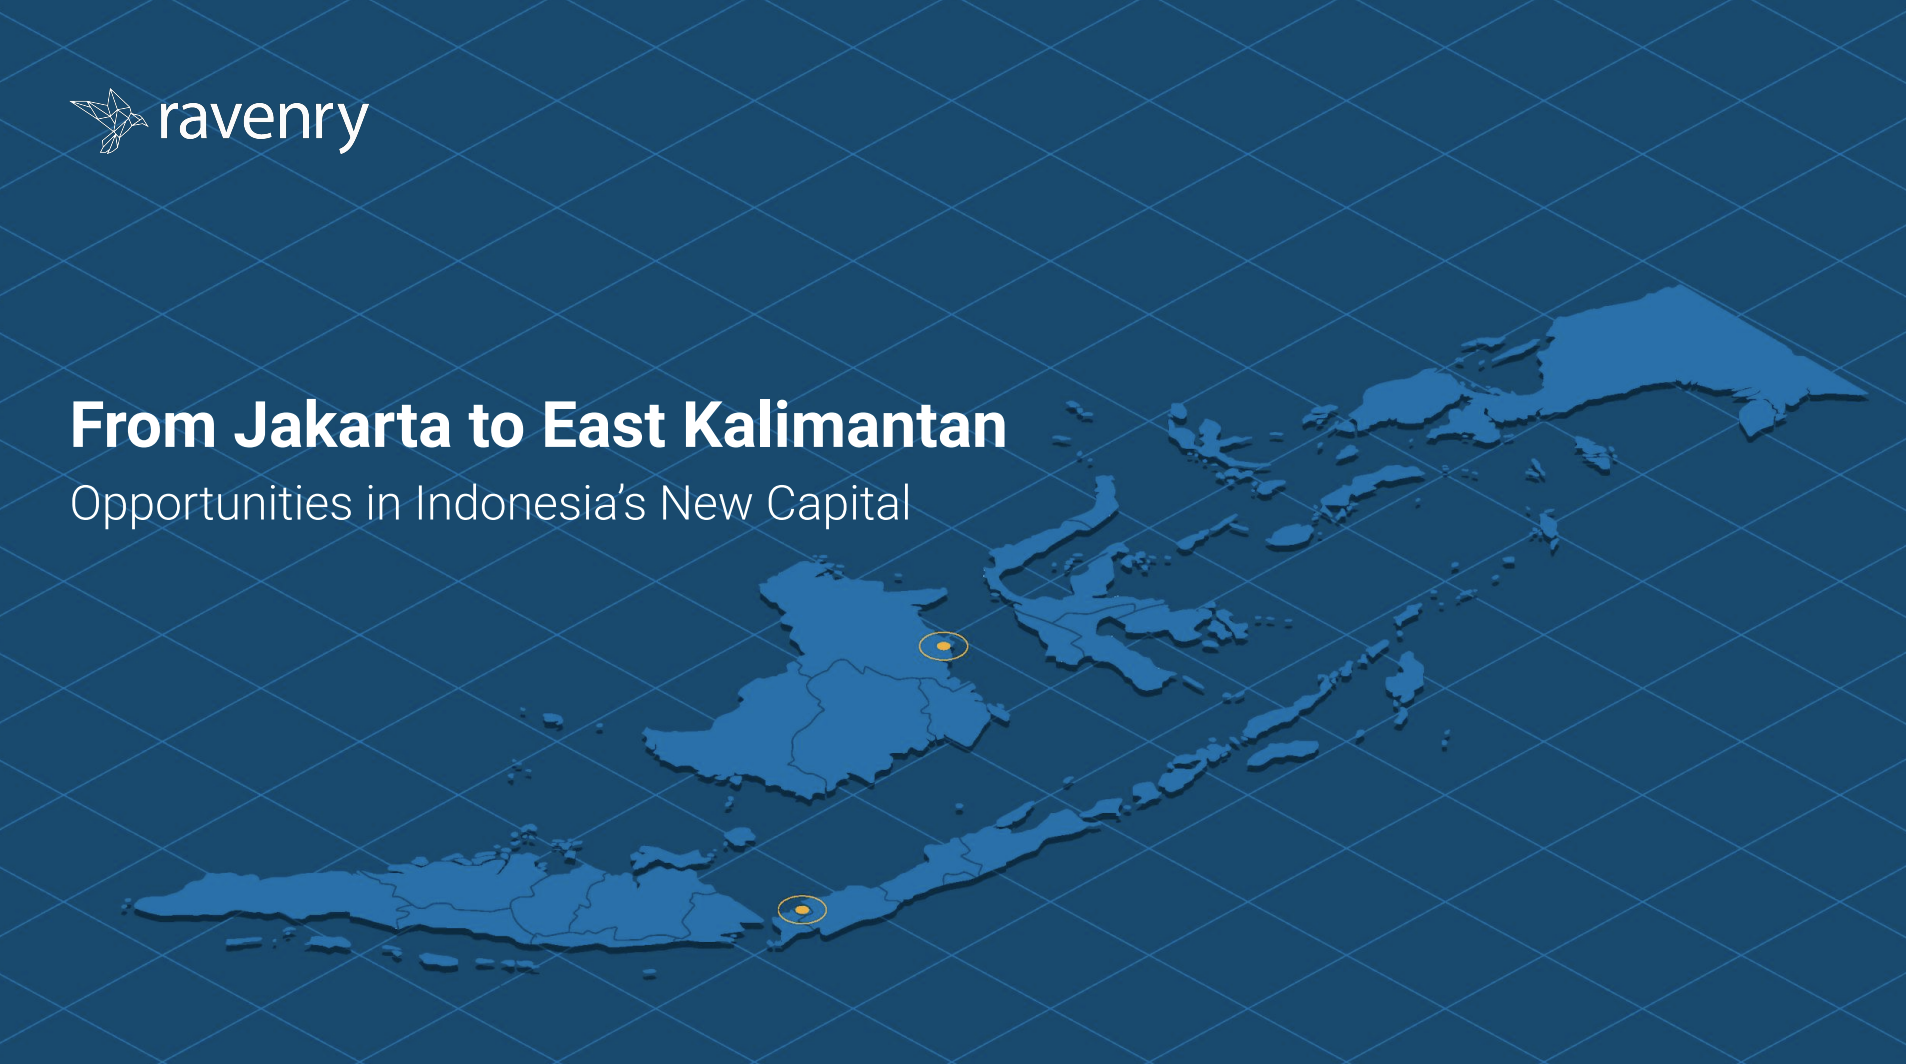 From Jakarta to East Kalimantan: Opportunities in Indonesia's New Capital